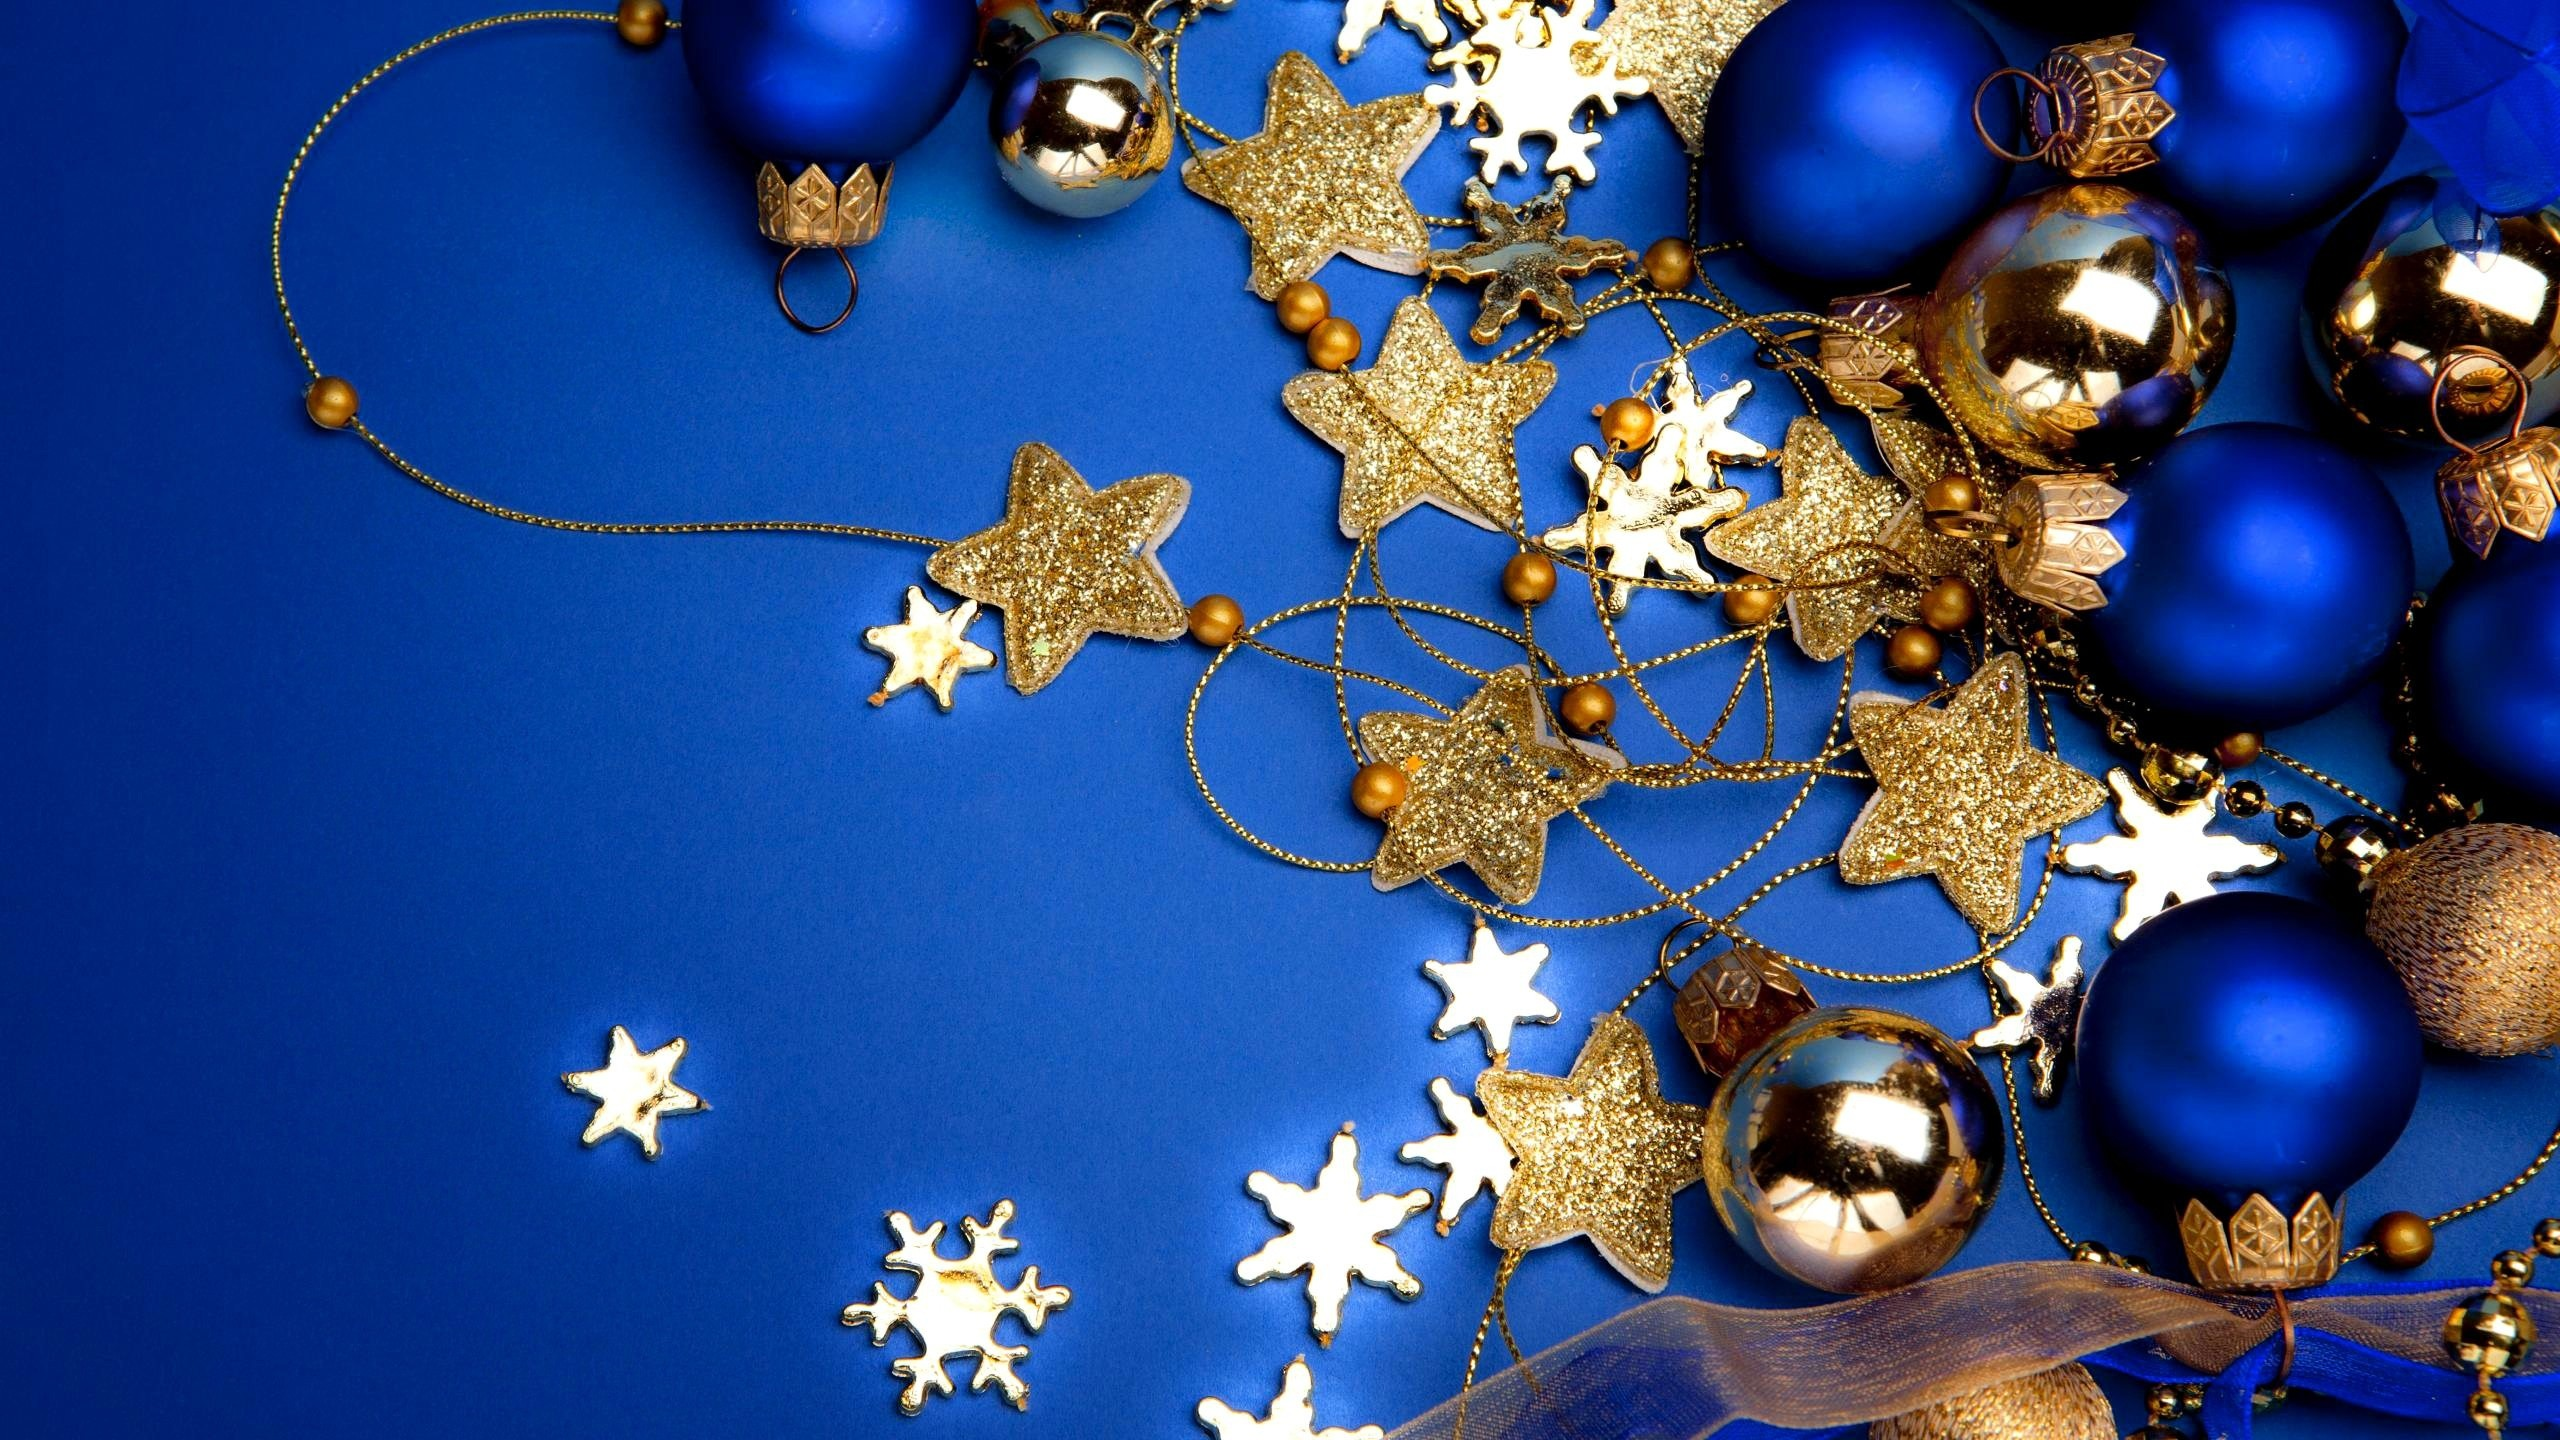 2560x1440 Blue Christmas Wallpaper HD | PixelsTalk.Net